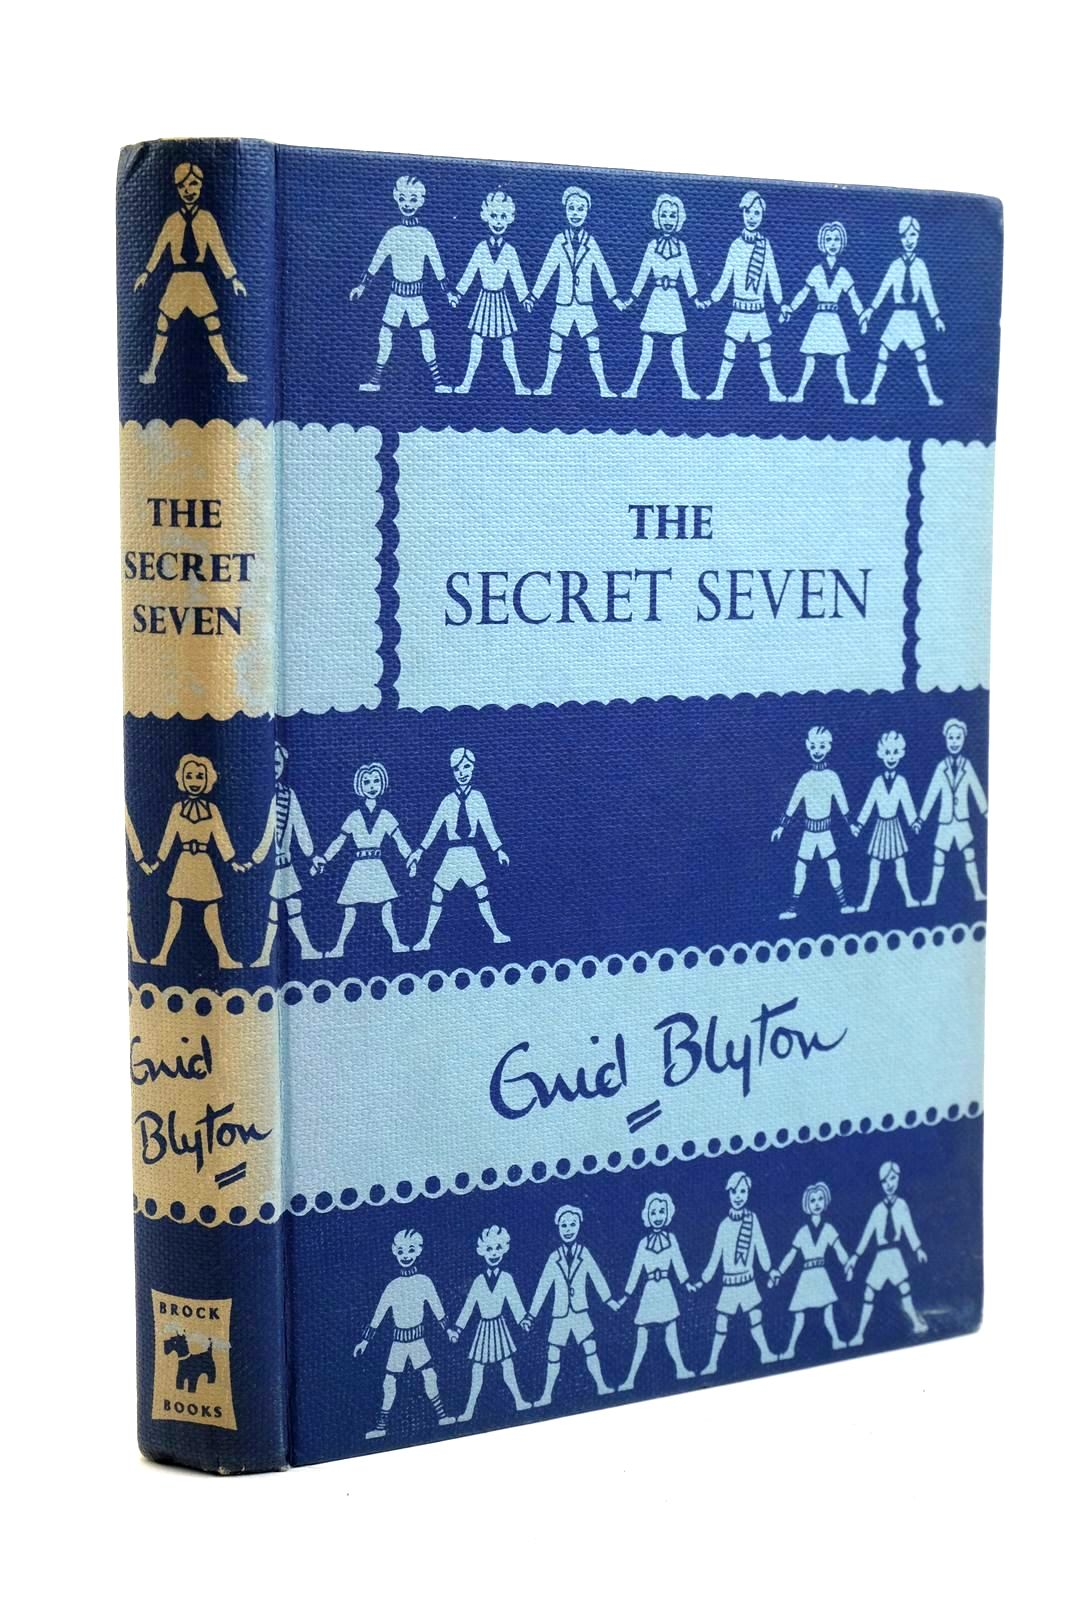 Photo of THE SECRET SEVEN written by Blyton, Enid illustrated by Brook, George published by Brockhampton Press Ltd. (STOCK CODE: 1320724)  for sale by Stella & Rose's Books